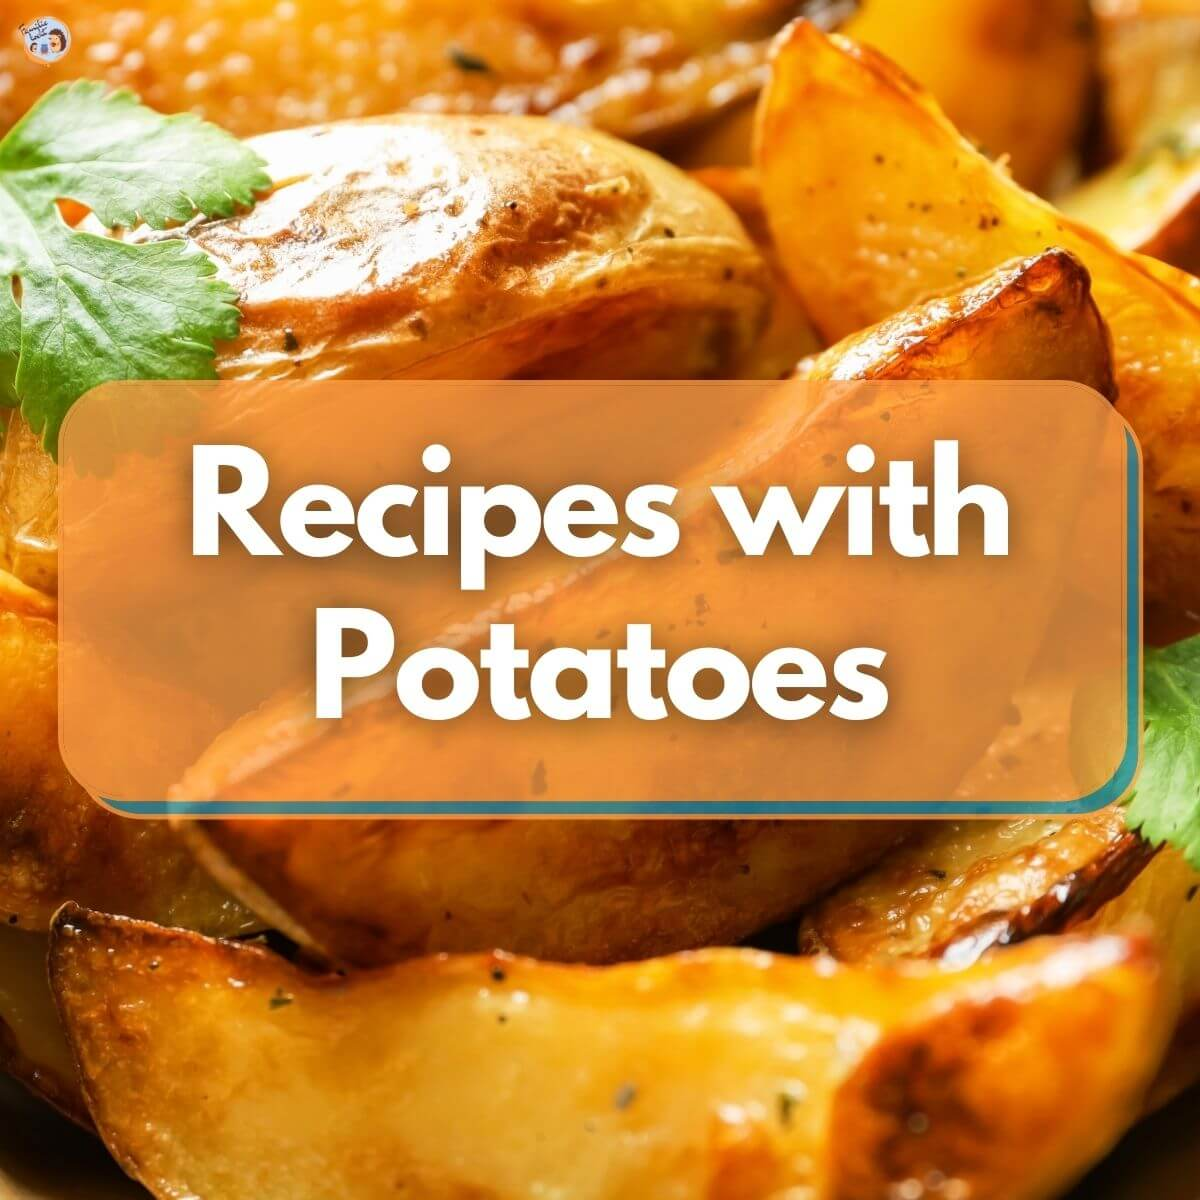 Recipes with potatoes